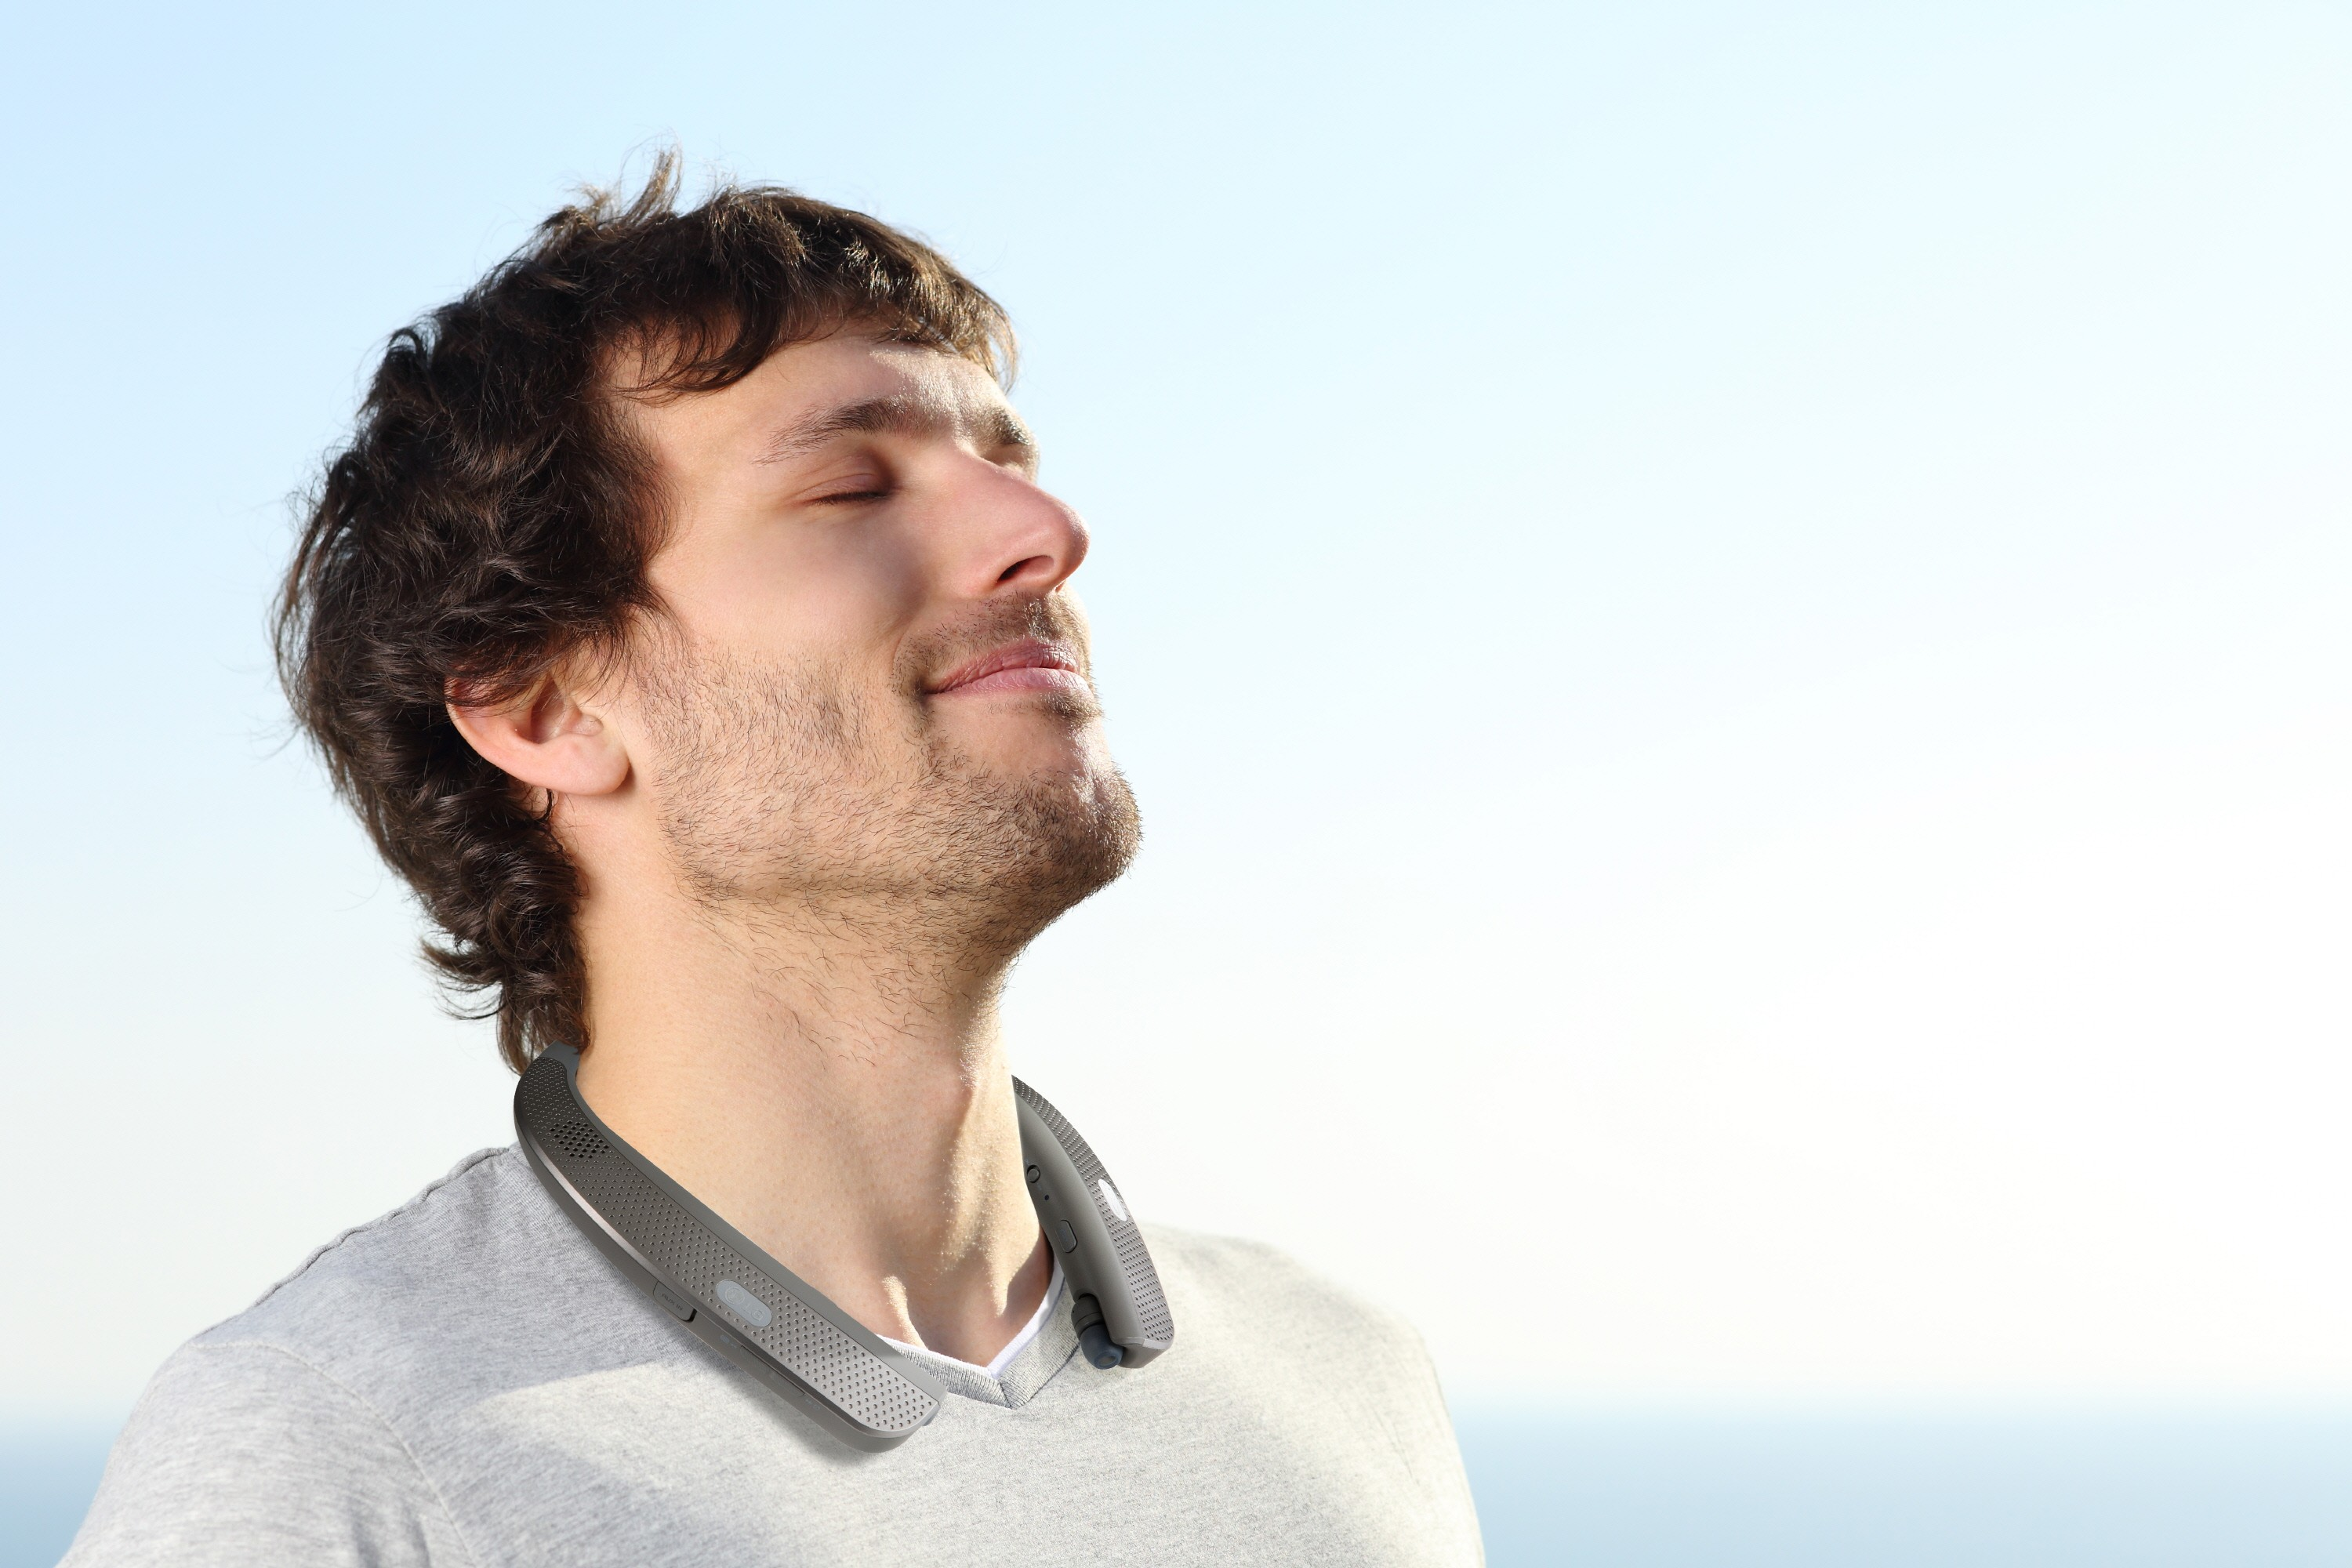 A man looking toward the sky with the LG Tone Studio around his neck